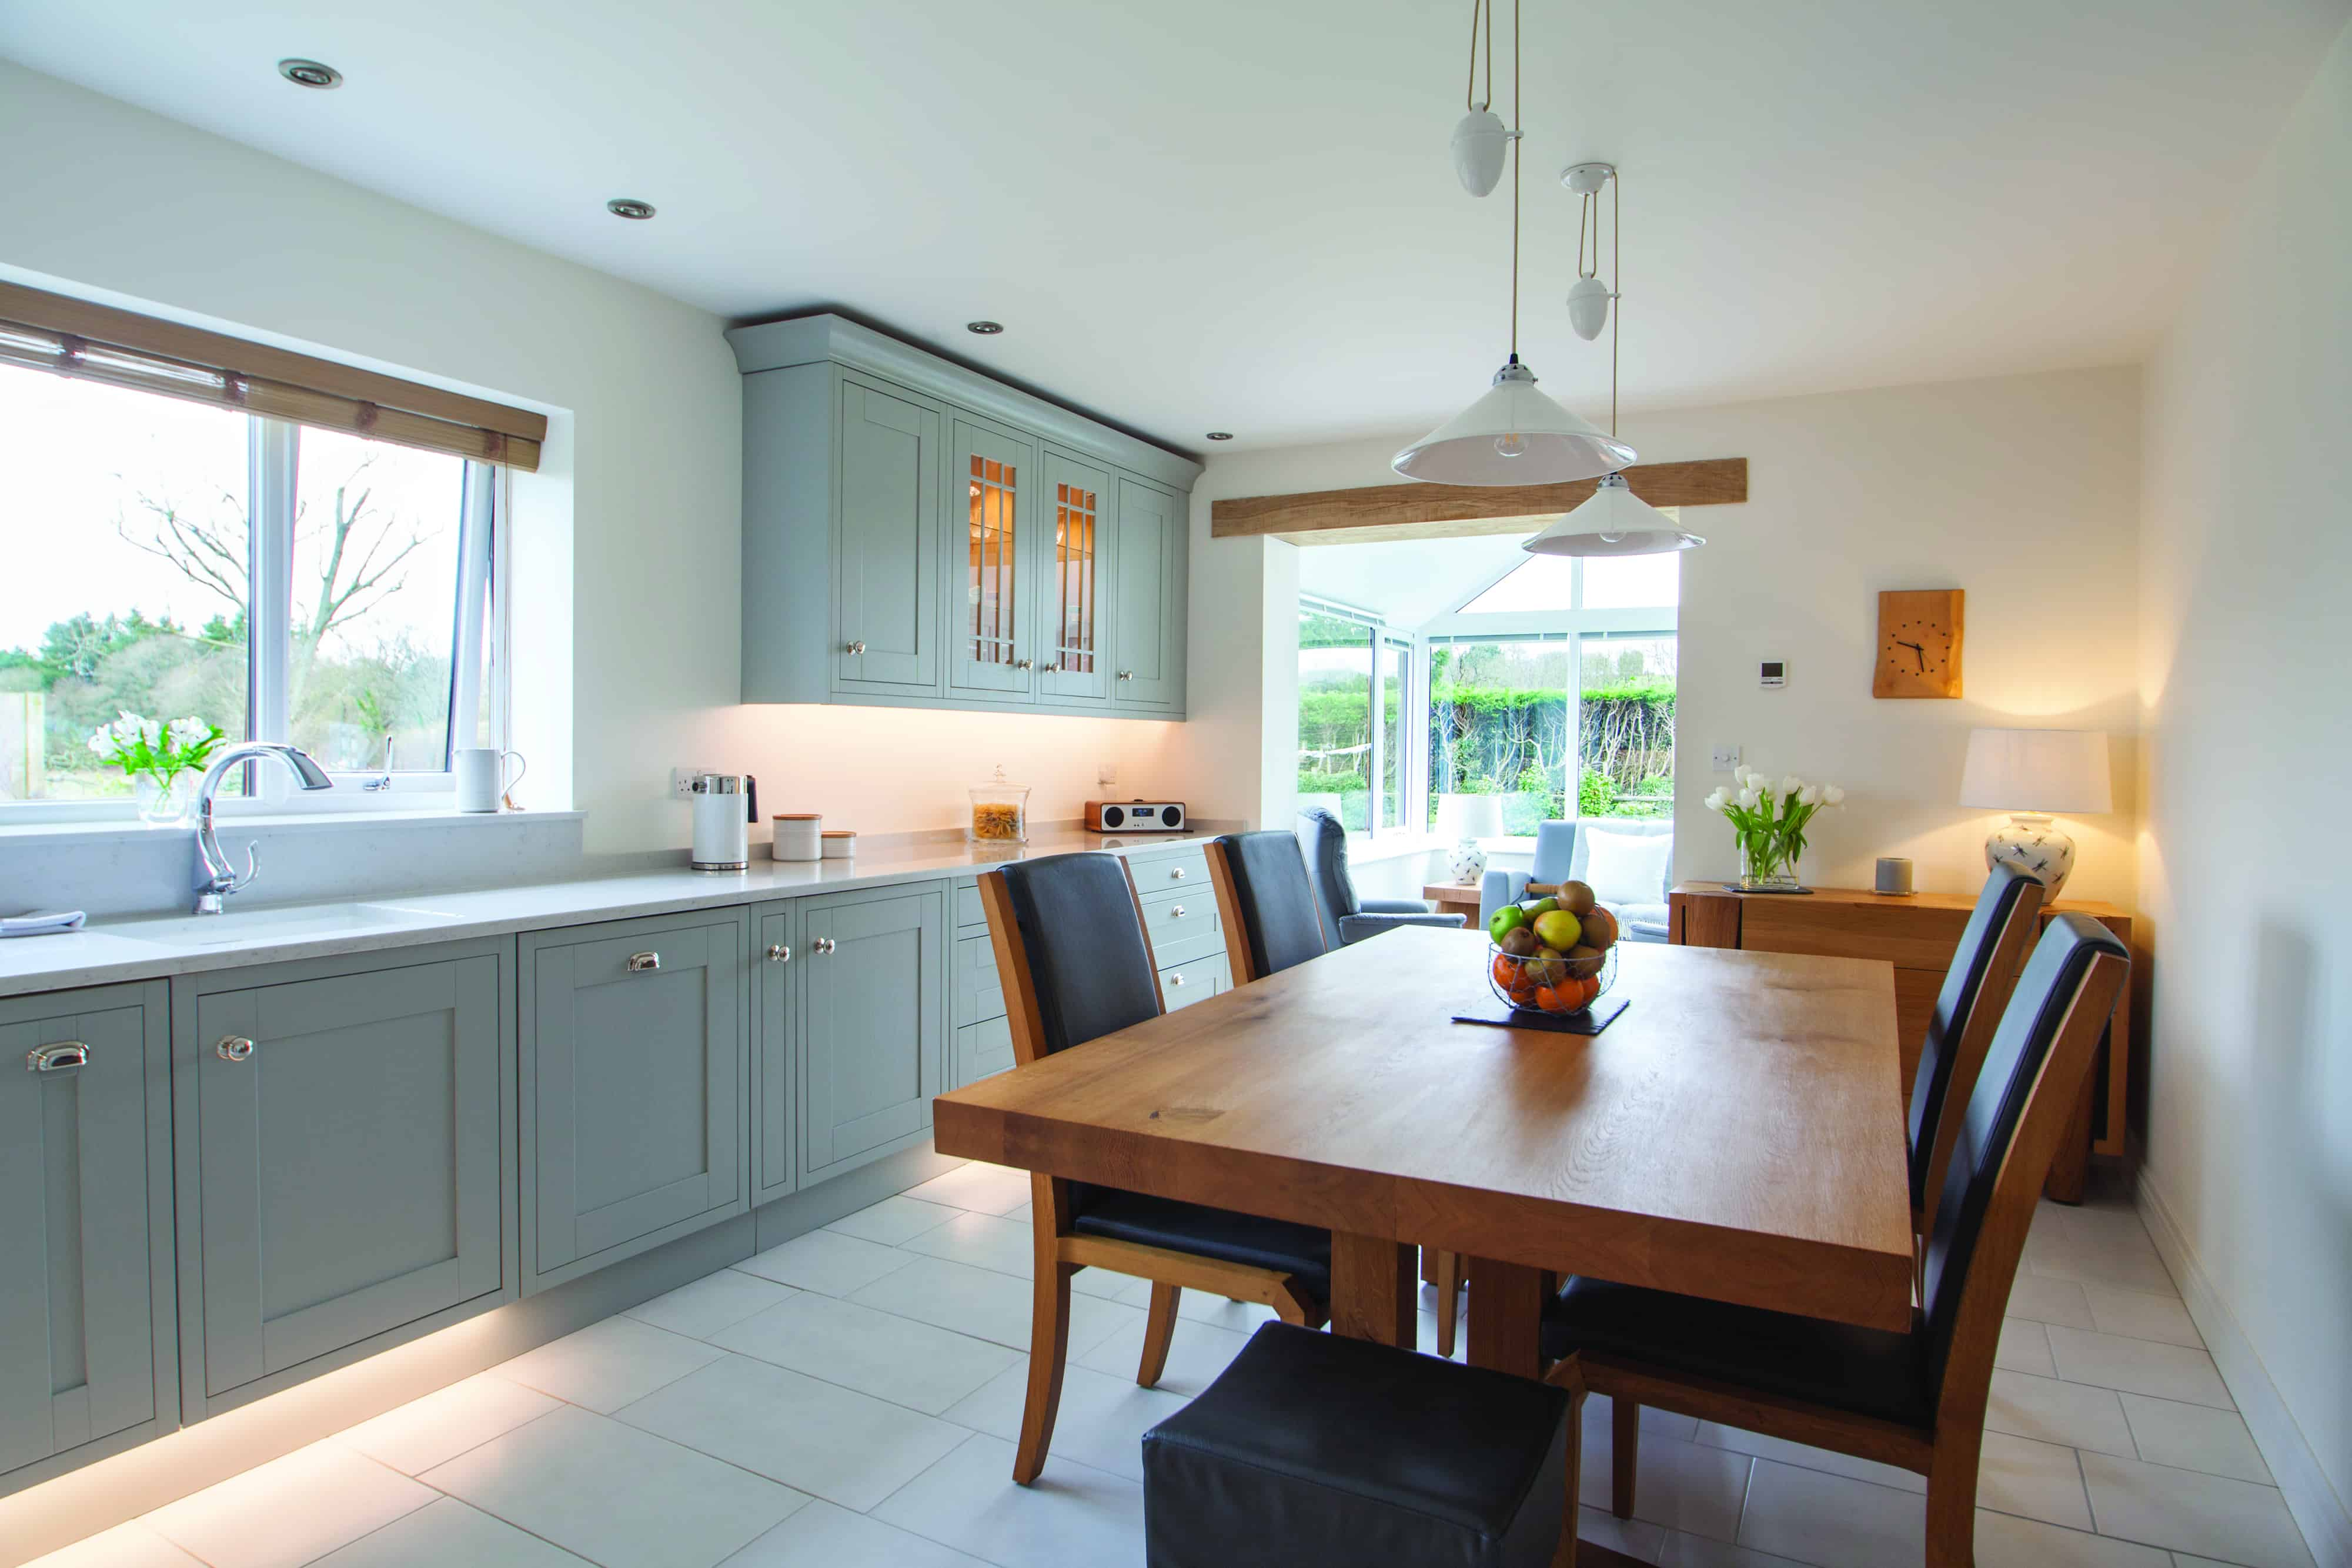 Light grey shaker kitchen design by herbert william kitchen hampshire for Kitchen ideas shaker